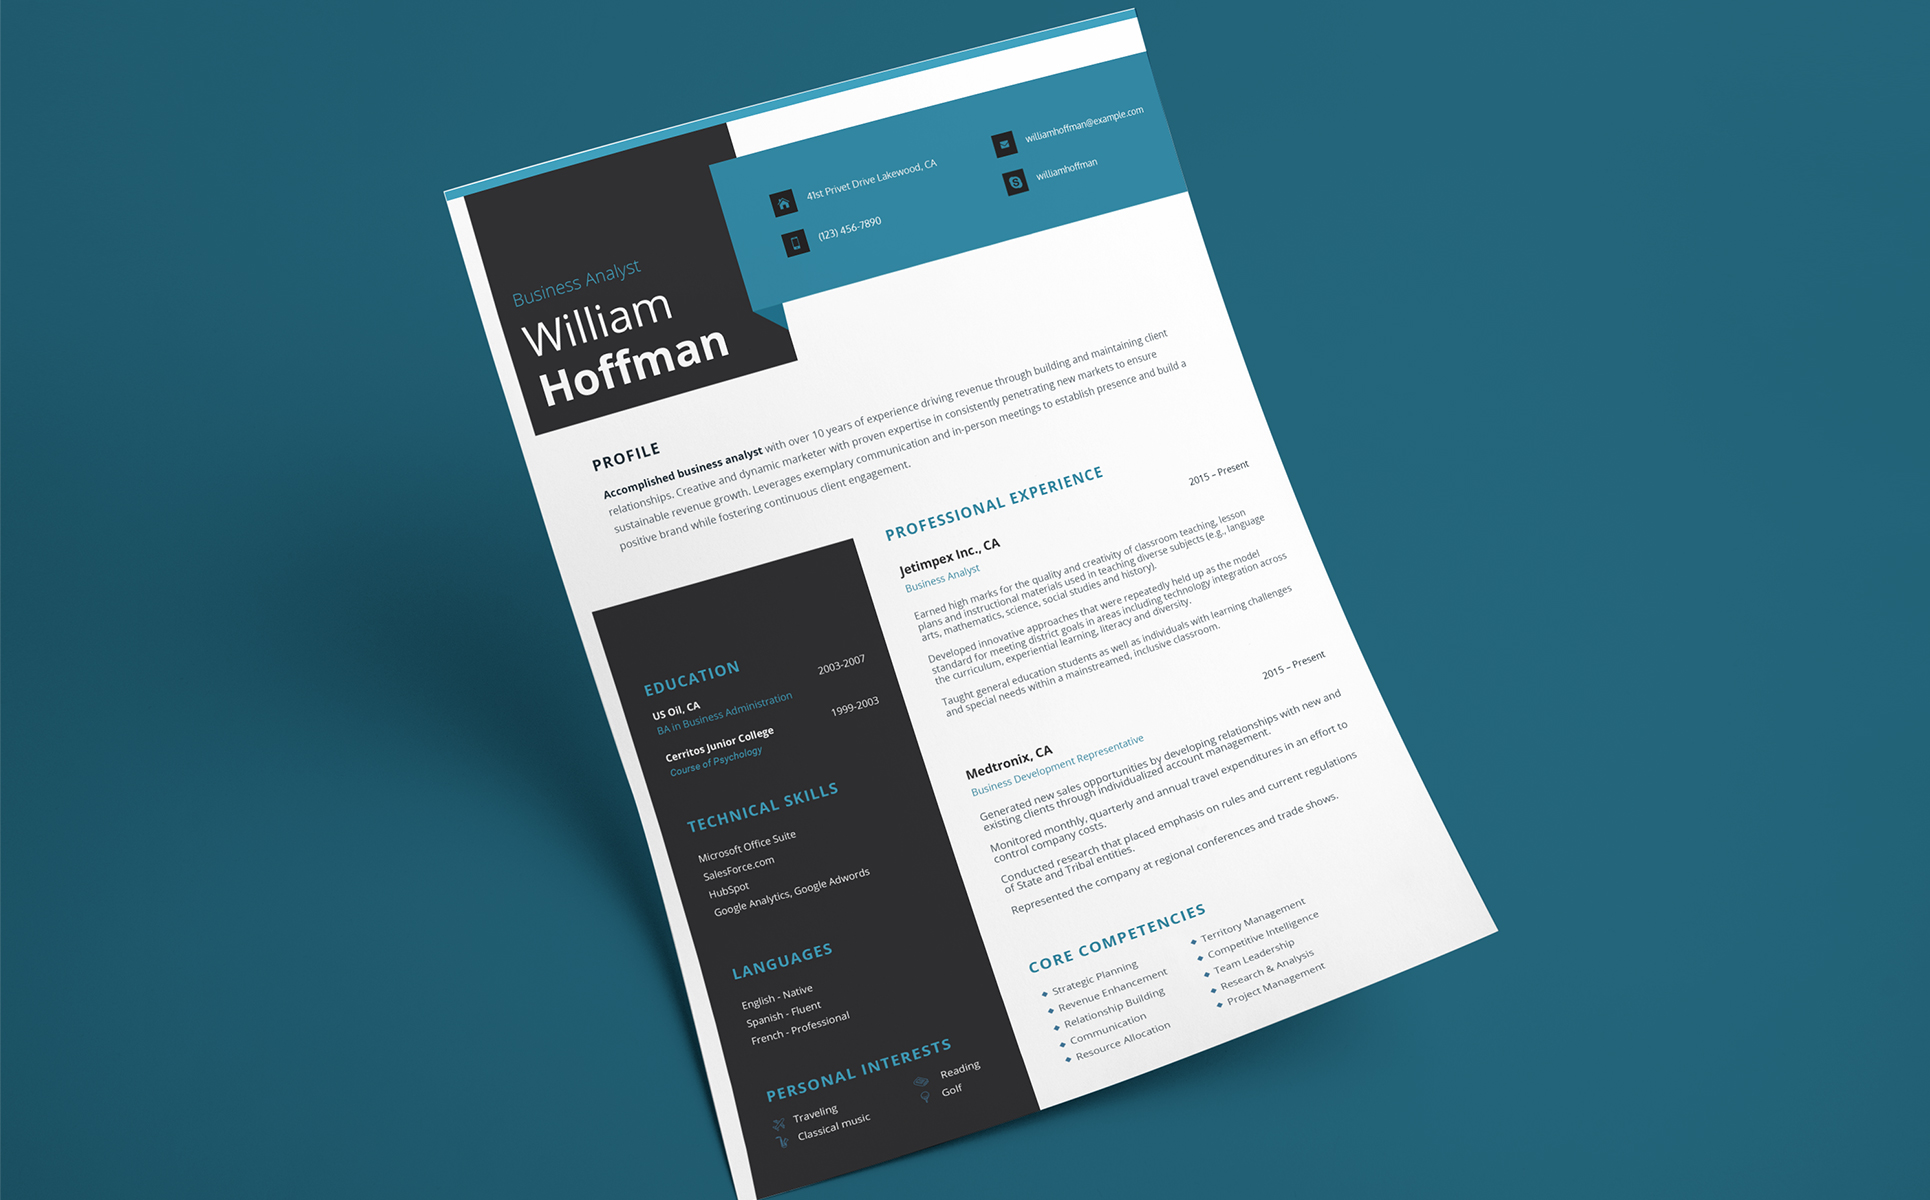 William Hoffman  Business Analyst Resume Template